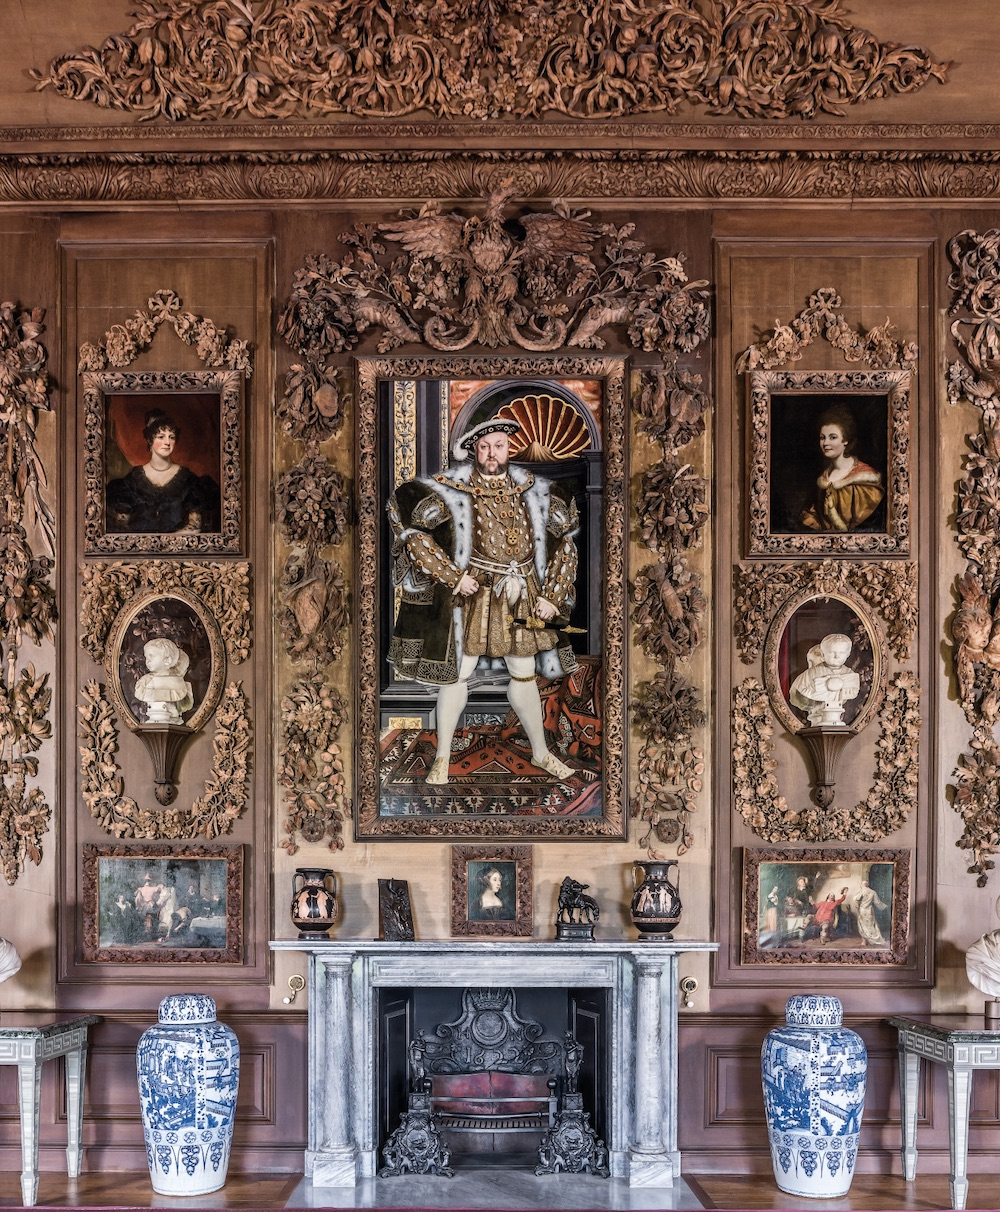 Wood carvings by Grinling Gibbons